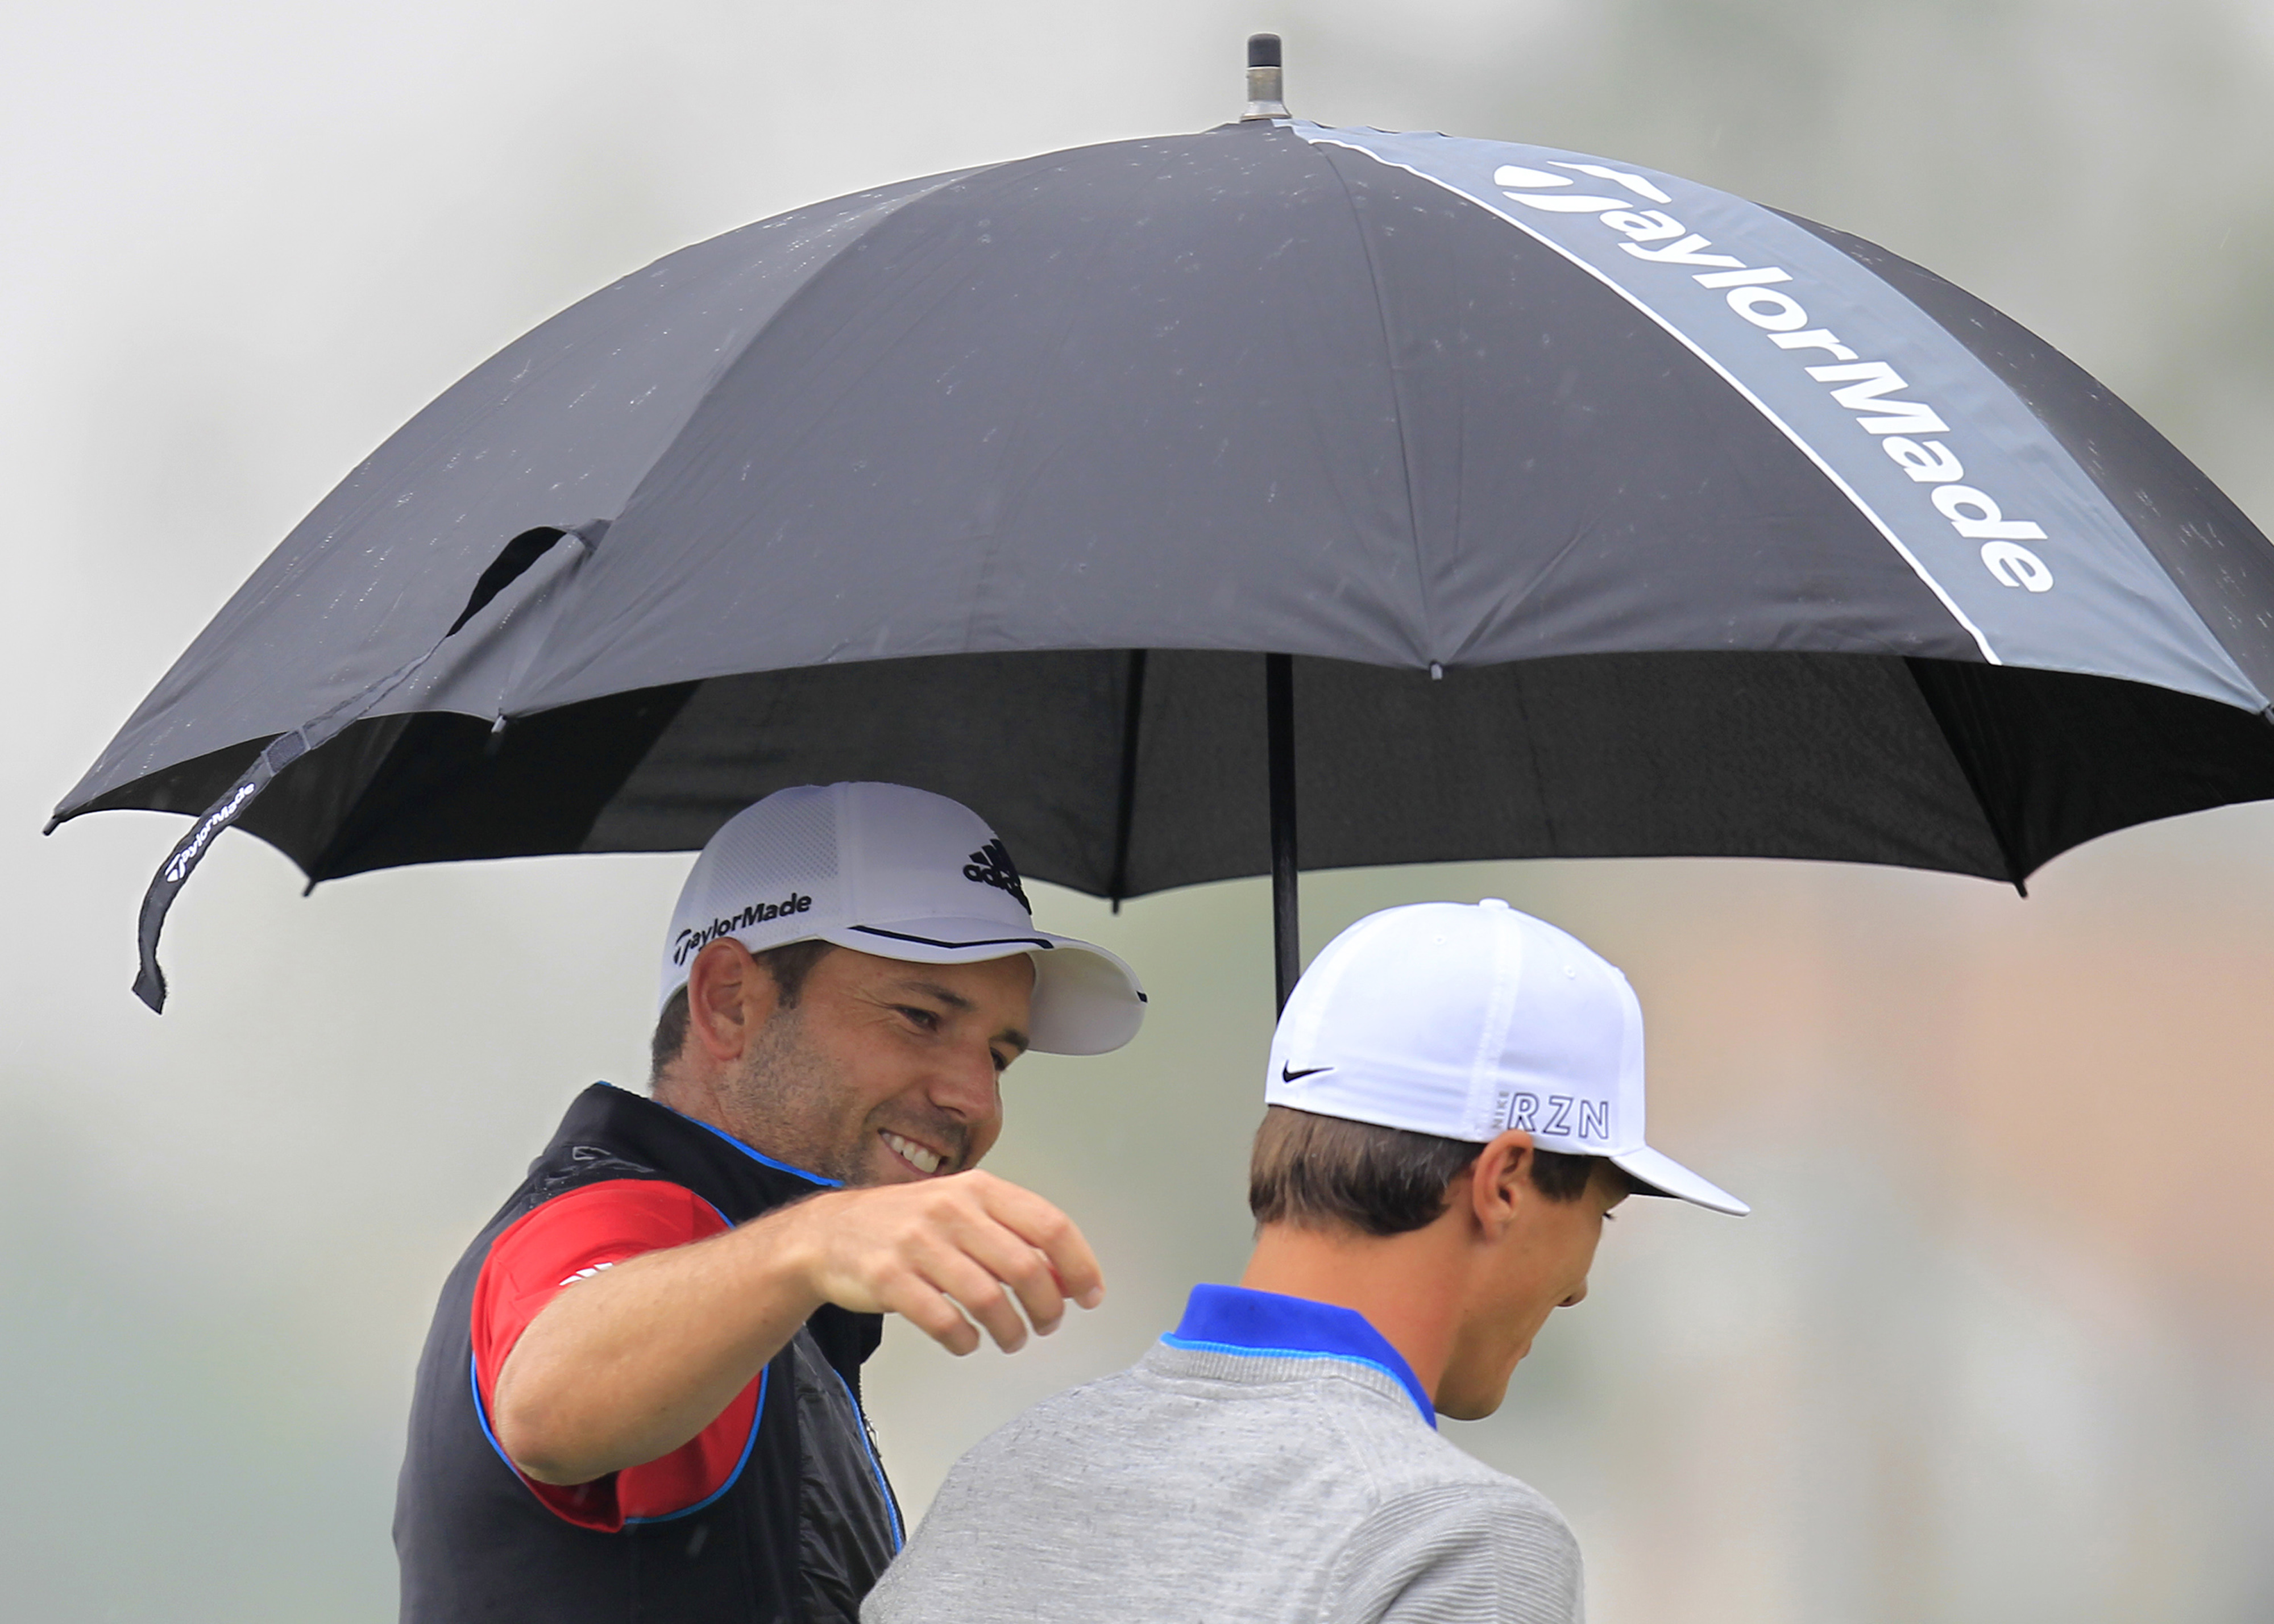 Sergio Garcia of Spain, left, gestures as he walks with Thorbjorn Olesen of Denmark, right, on the 15th hole during the first round of the BMW Masters golf tournament at the Lake Malaren Golf Club in Shanghai, China Thursday, Nov. 12, 2015. (AP Photo)